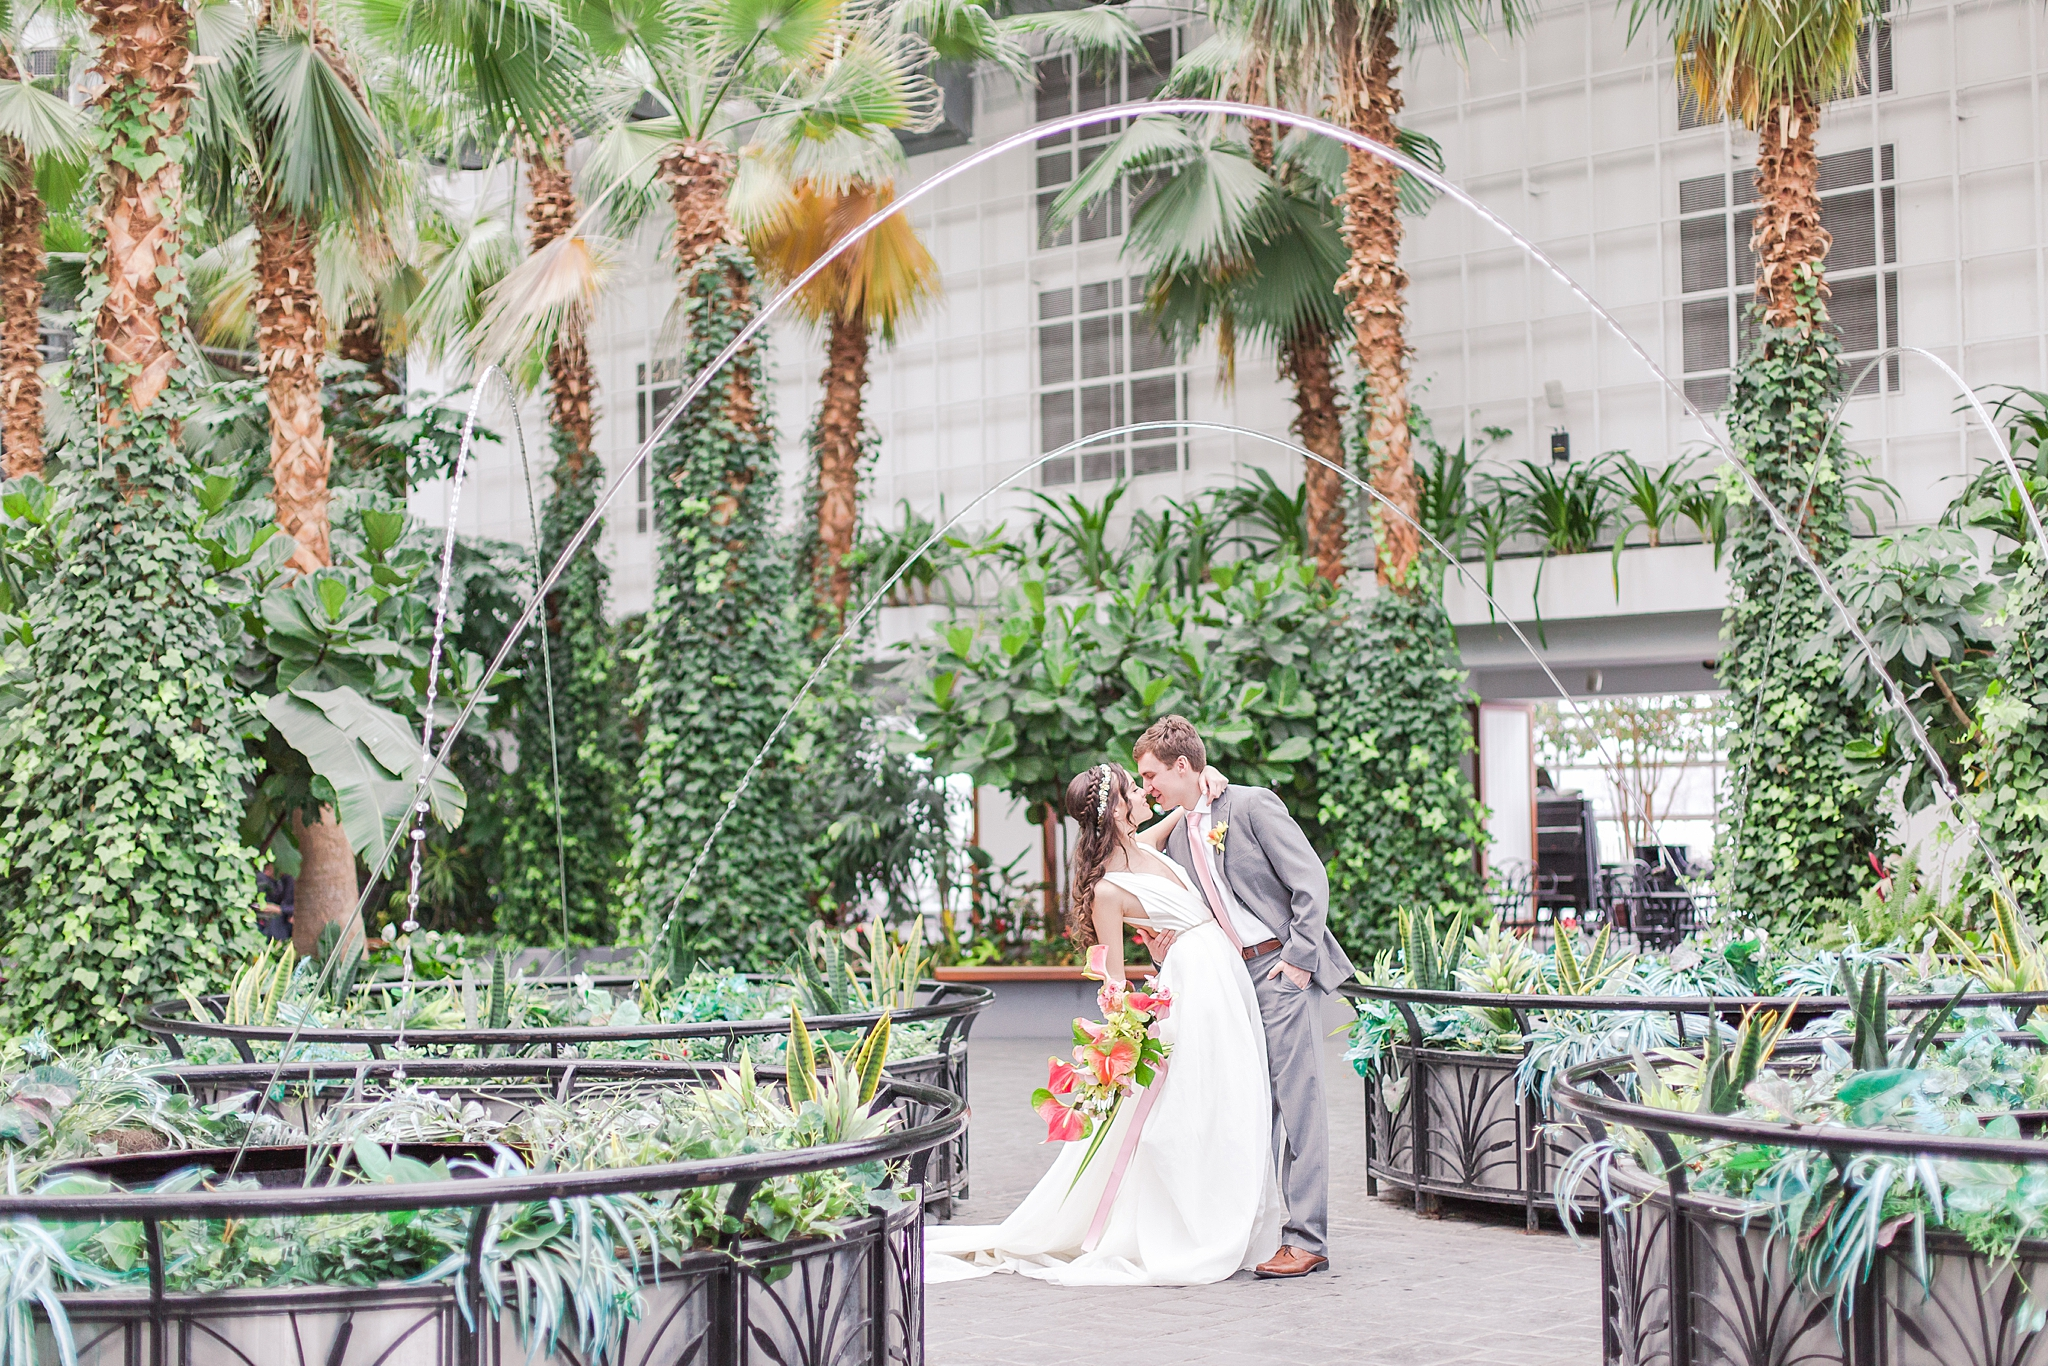 colorful-tropical-wedding-photos-at-the-crystal-gardens-in-chicago-illinois-by-courtney-carolyn-photography_0022.jpg